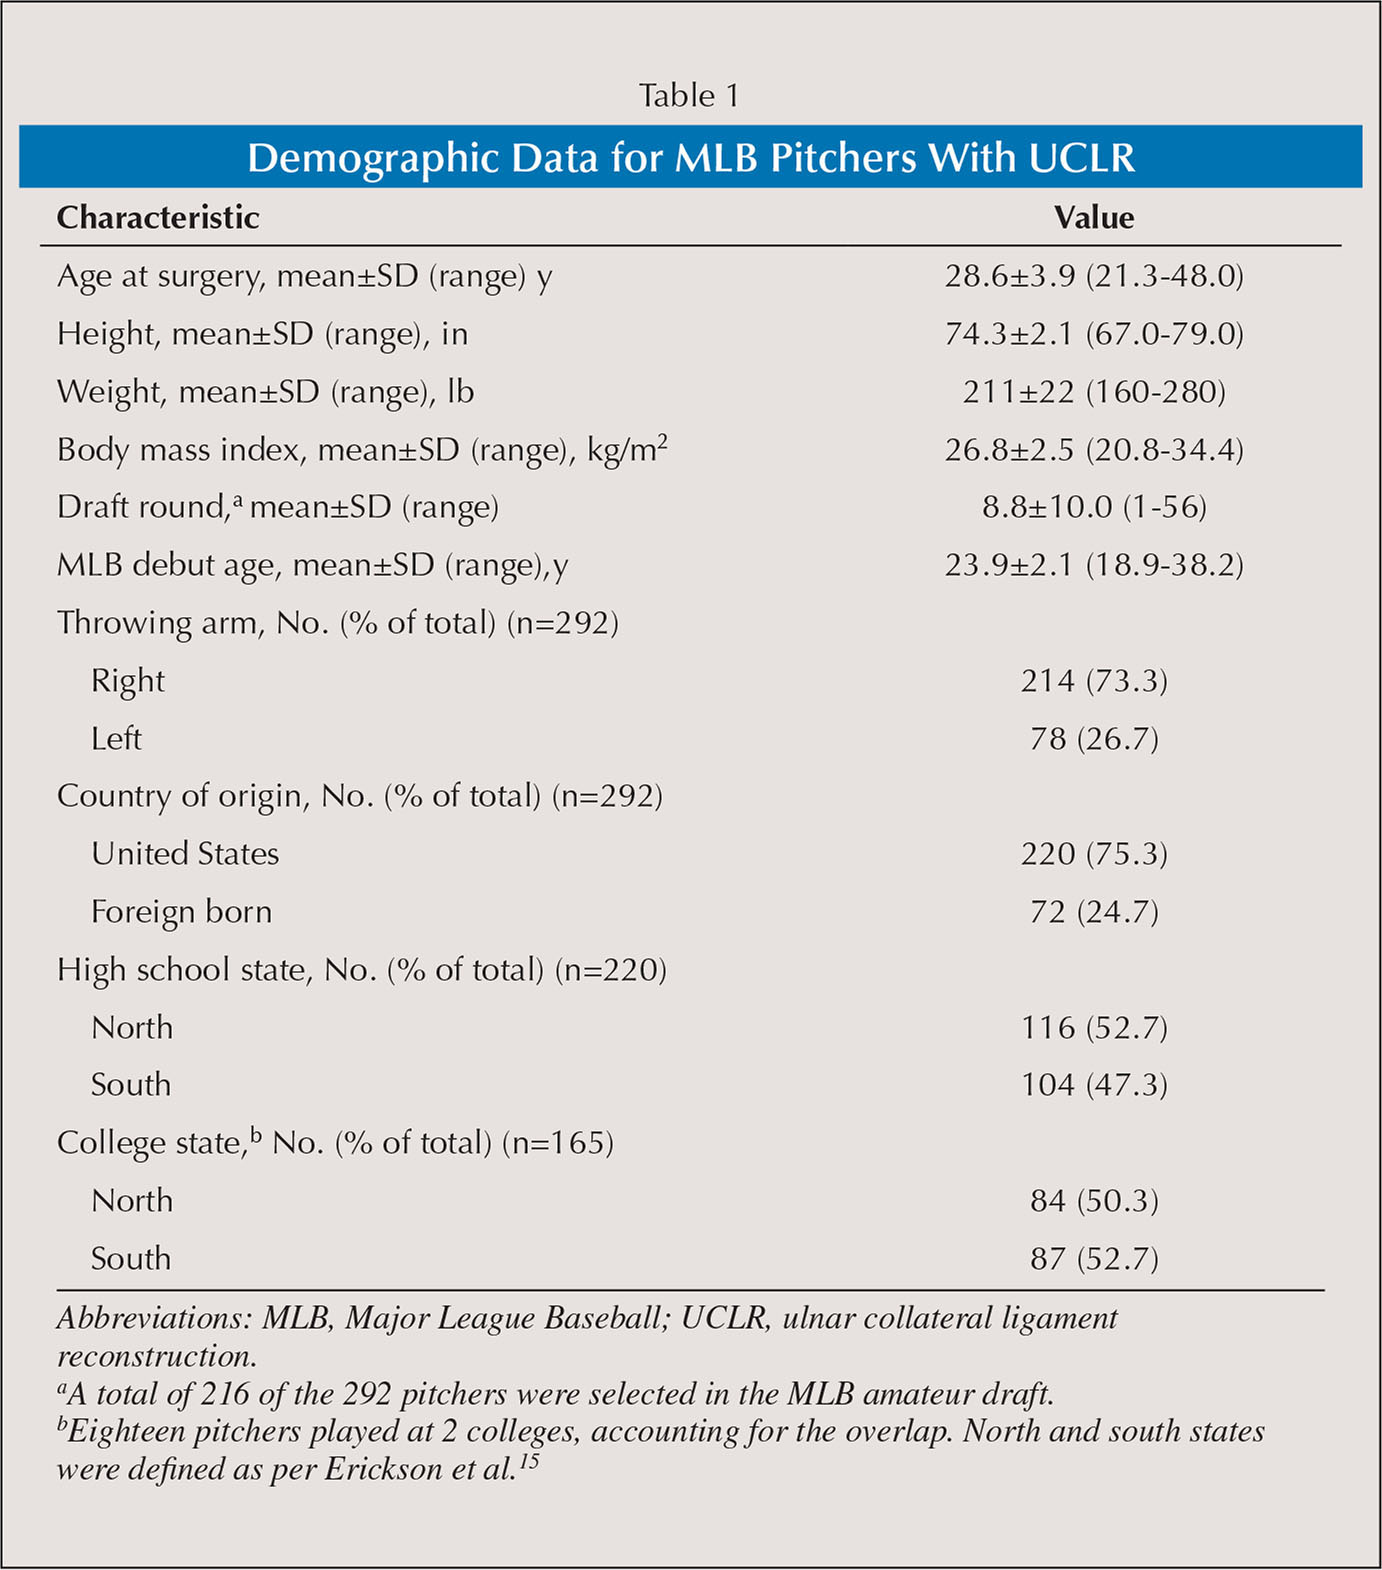 Demographic Data for MLB Pitchers With UCLR